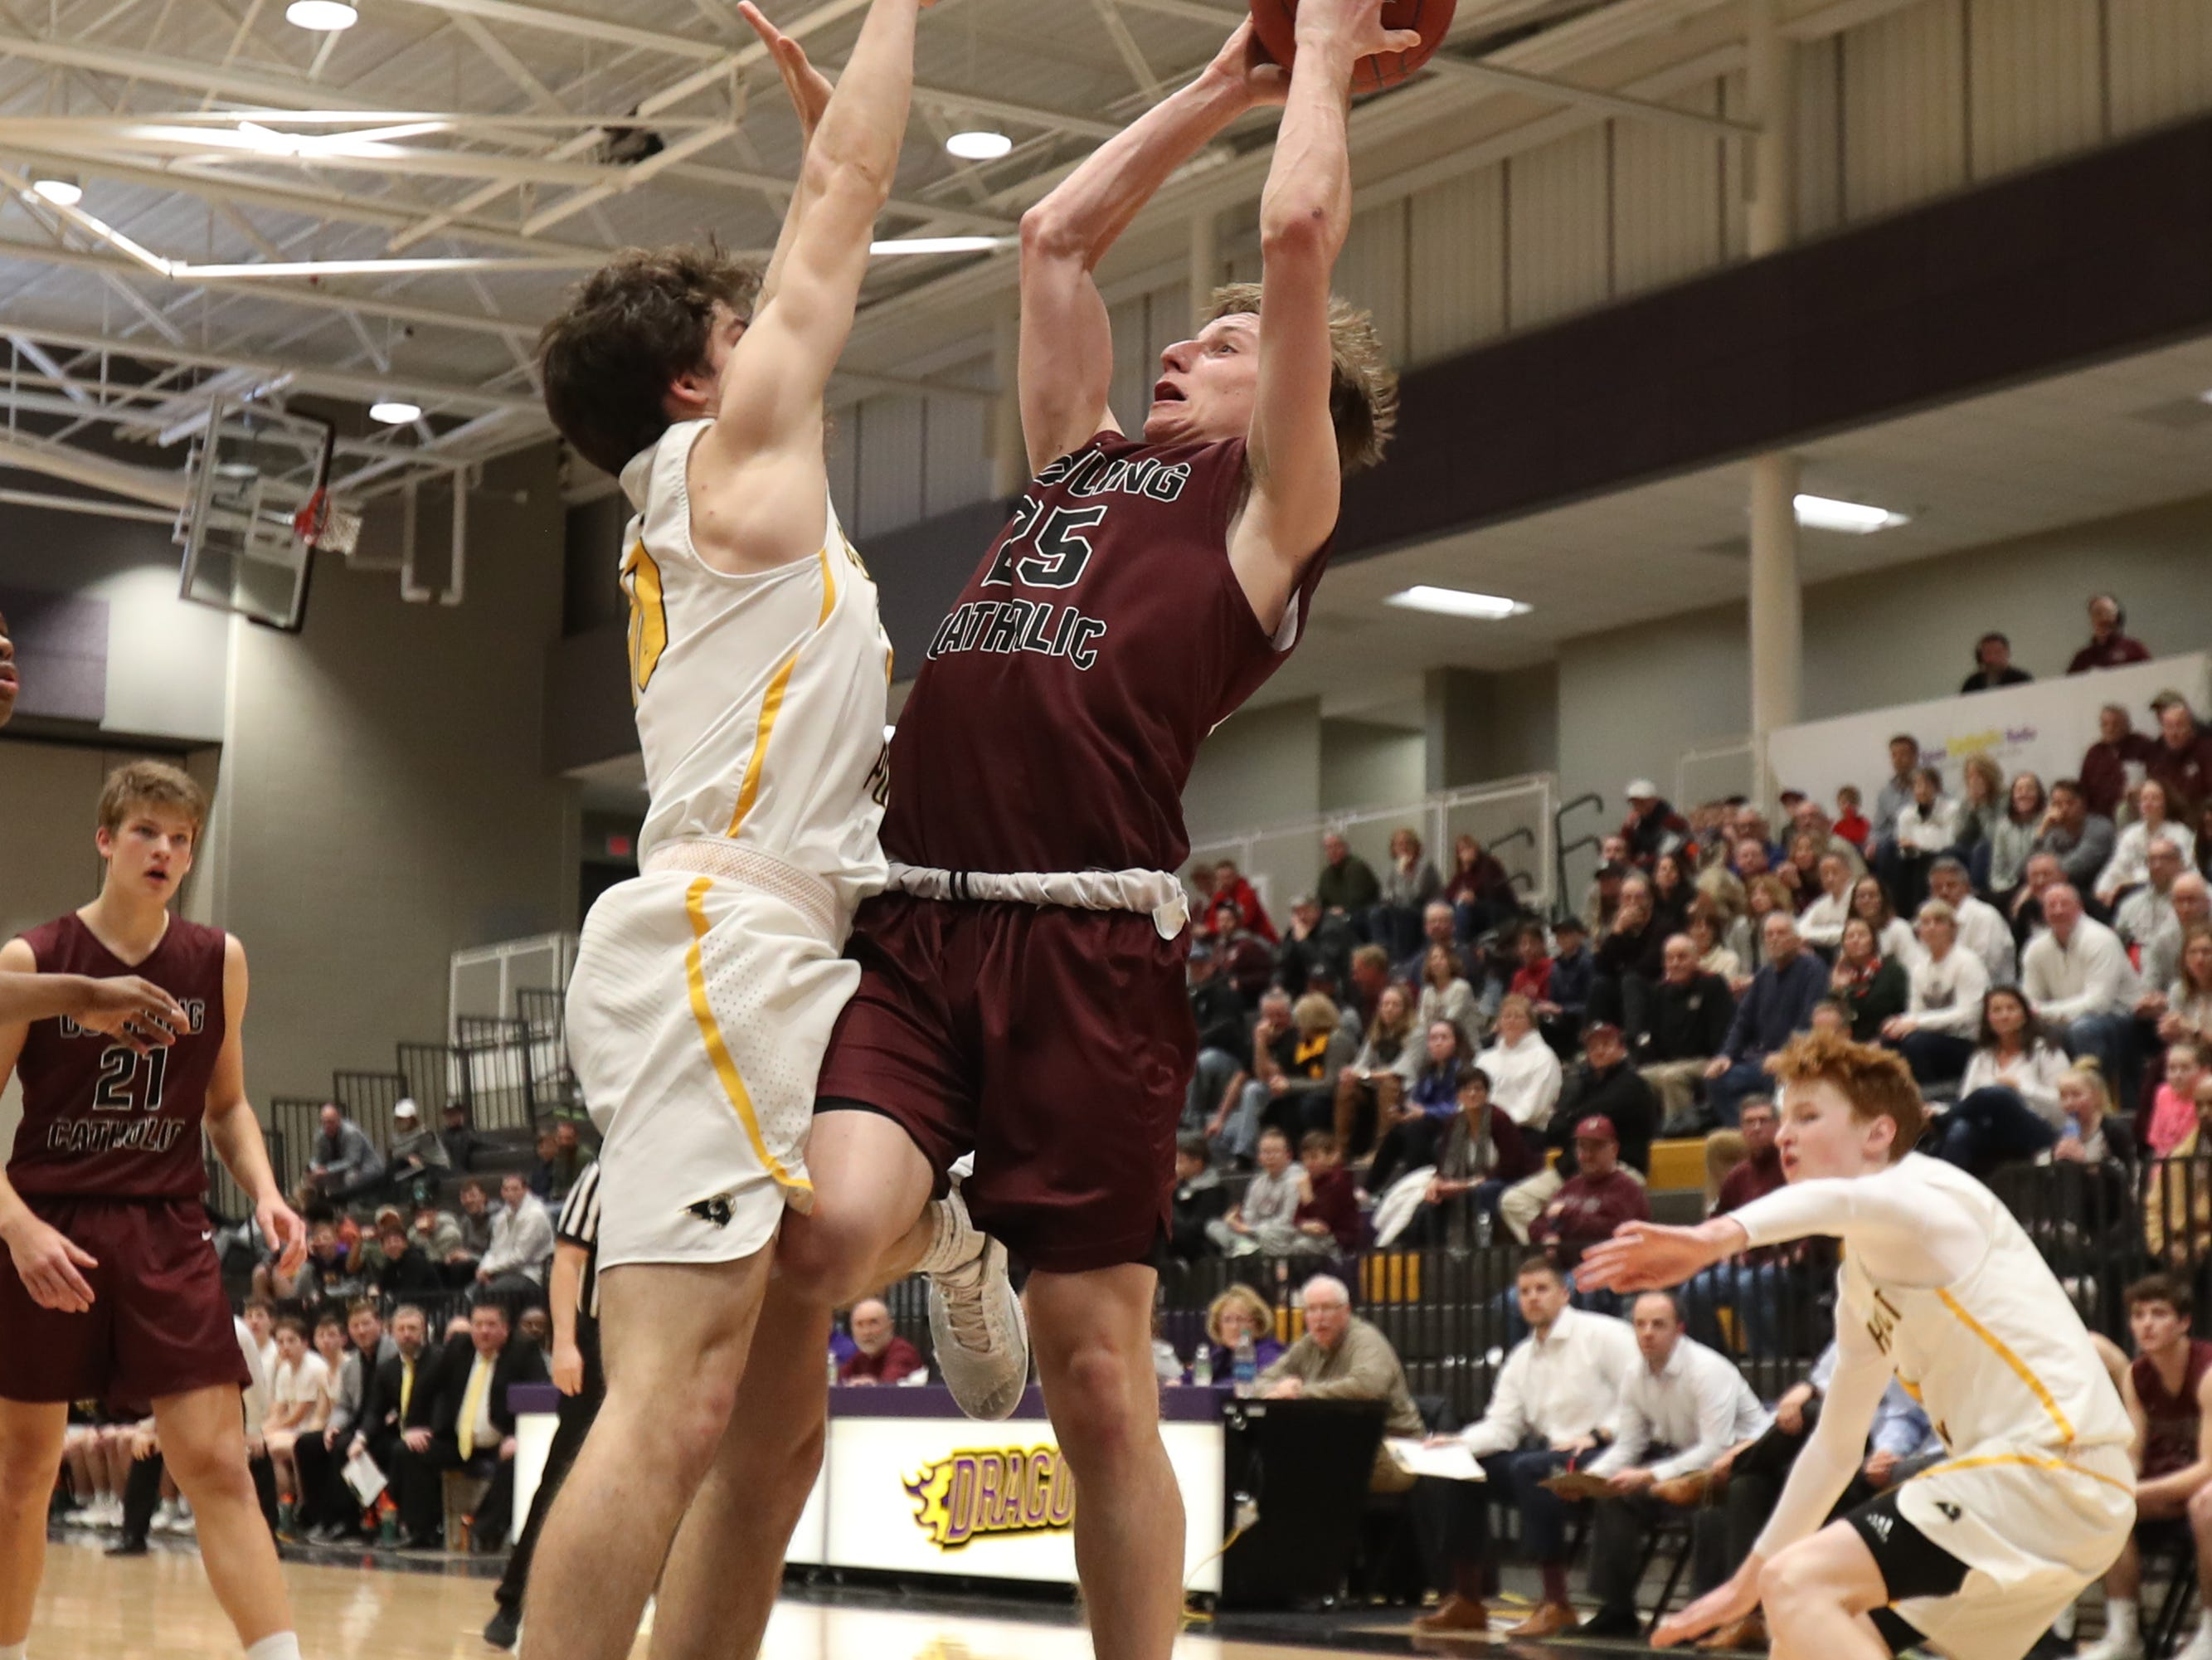 Dowling Catholic's Matt Stilwill (25) shoots over the top of Southeast Polk's Daniel Hackbarth (10) during their game at Johnston High School in Johnston, Iowa, on Tuesday, Feb. 26, 2019. Dowling won the game 44-40 to advance to state.